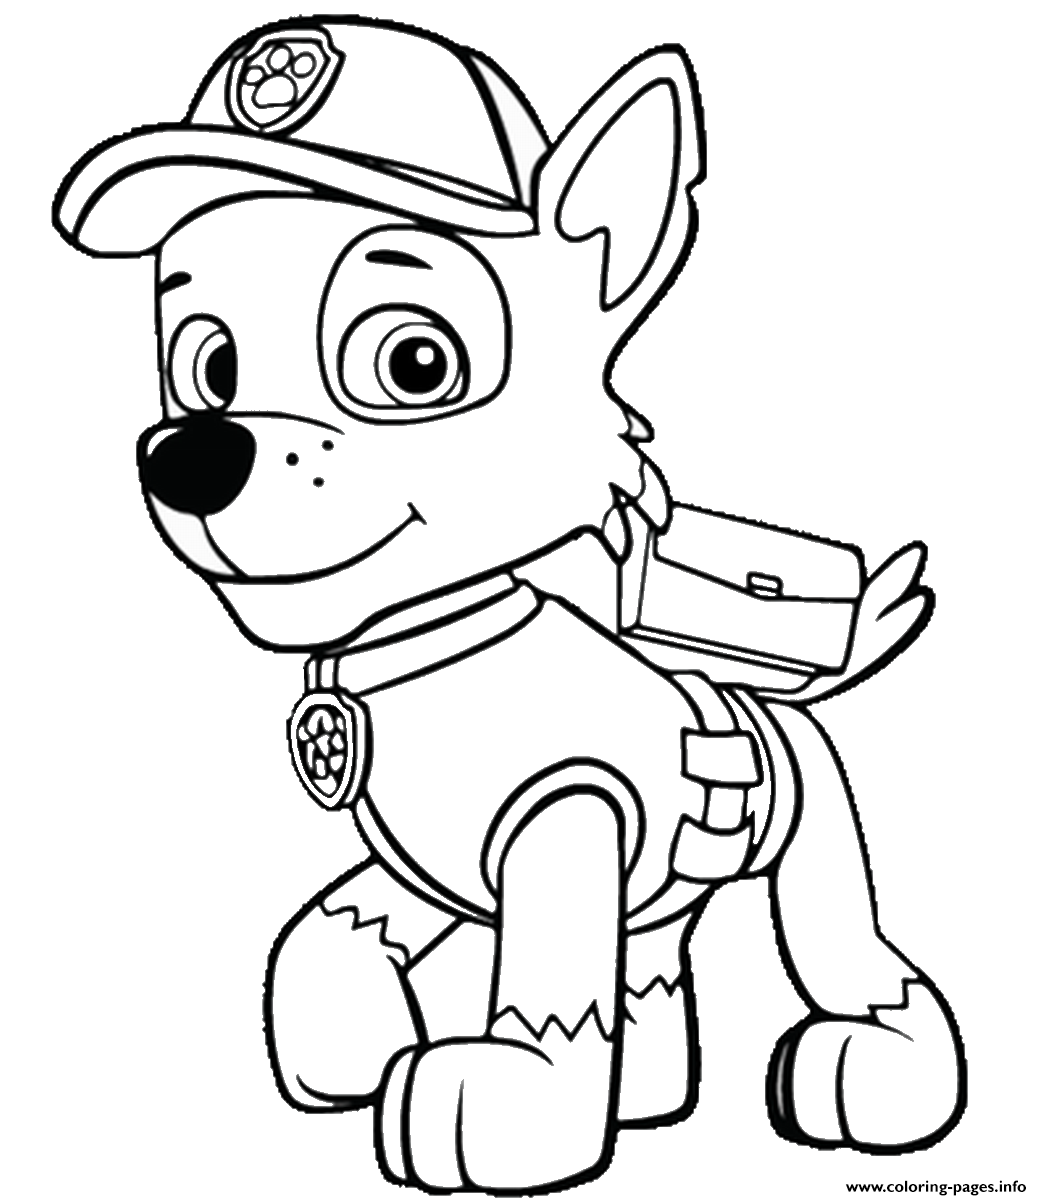 graphic relating to Printable Paw Patrol Coloring Pages named Free of charge PAW Patrol Coloring Internet pages - Joy is Home made